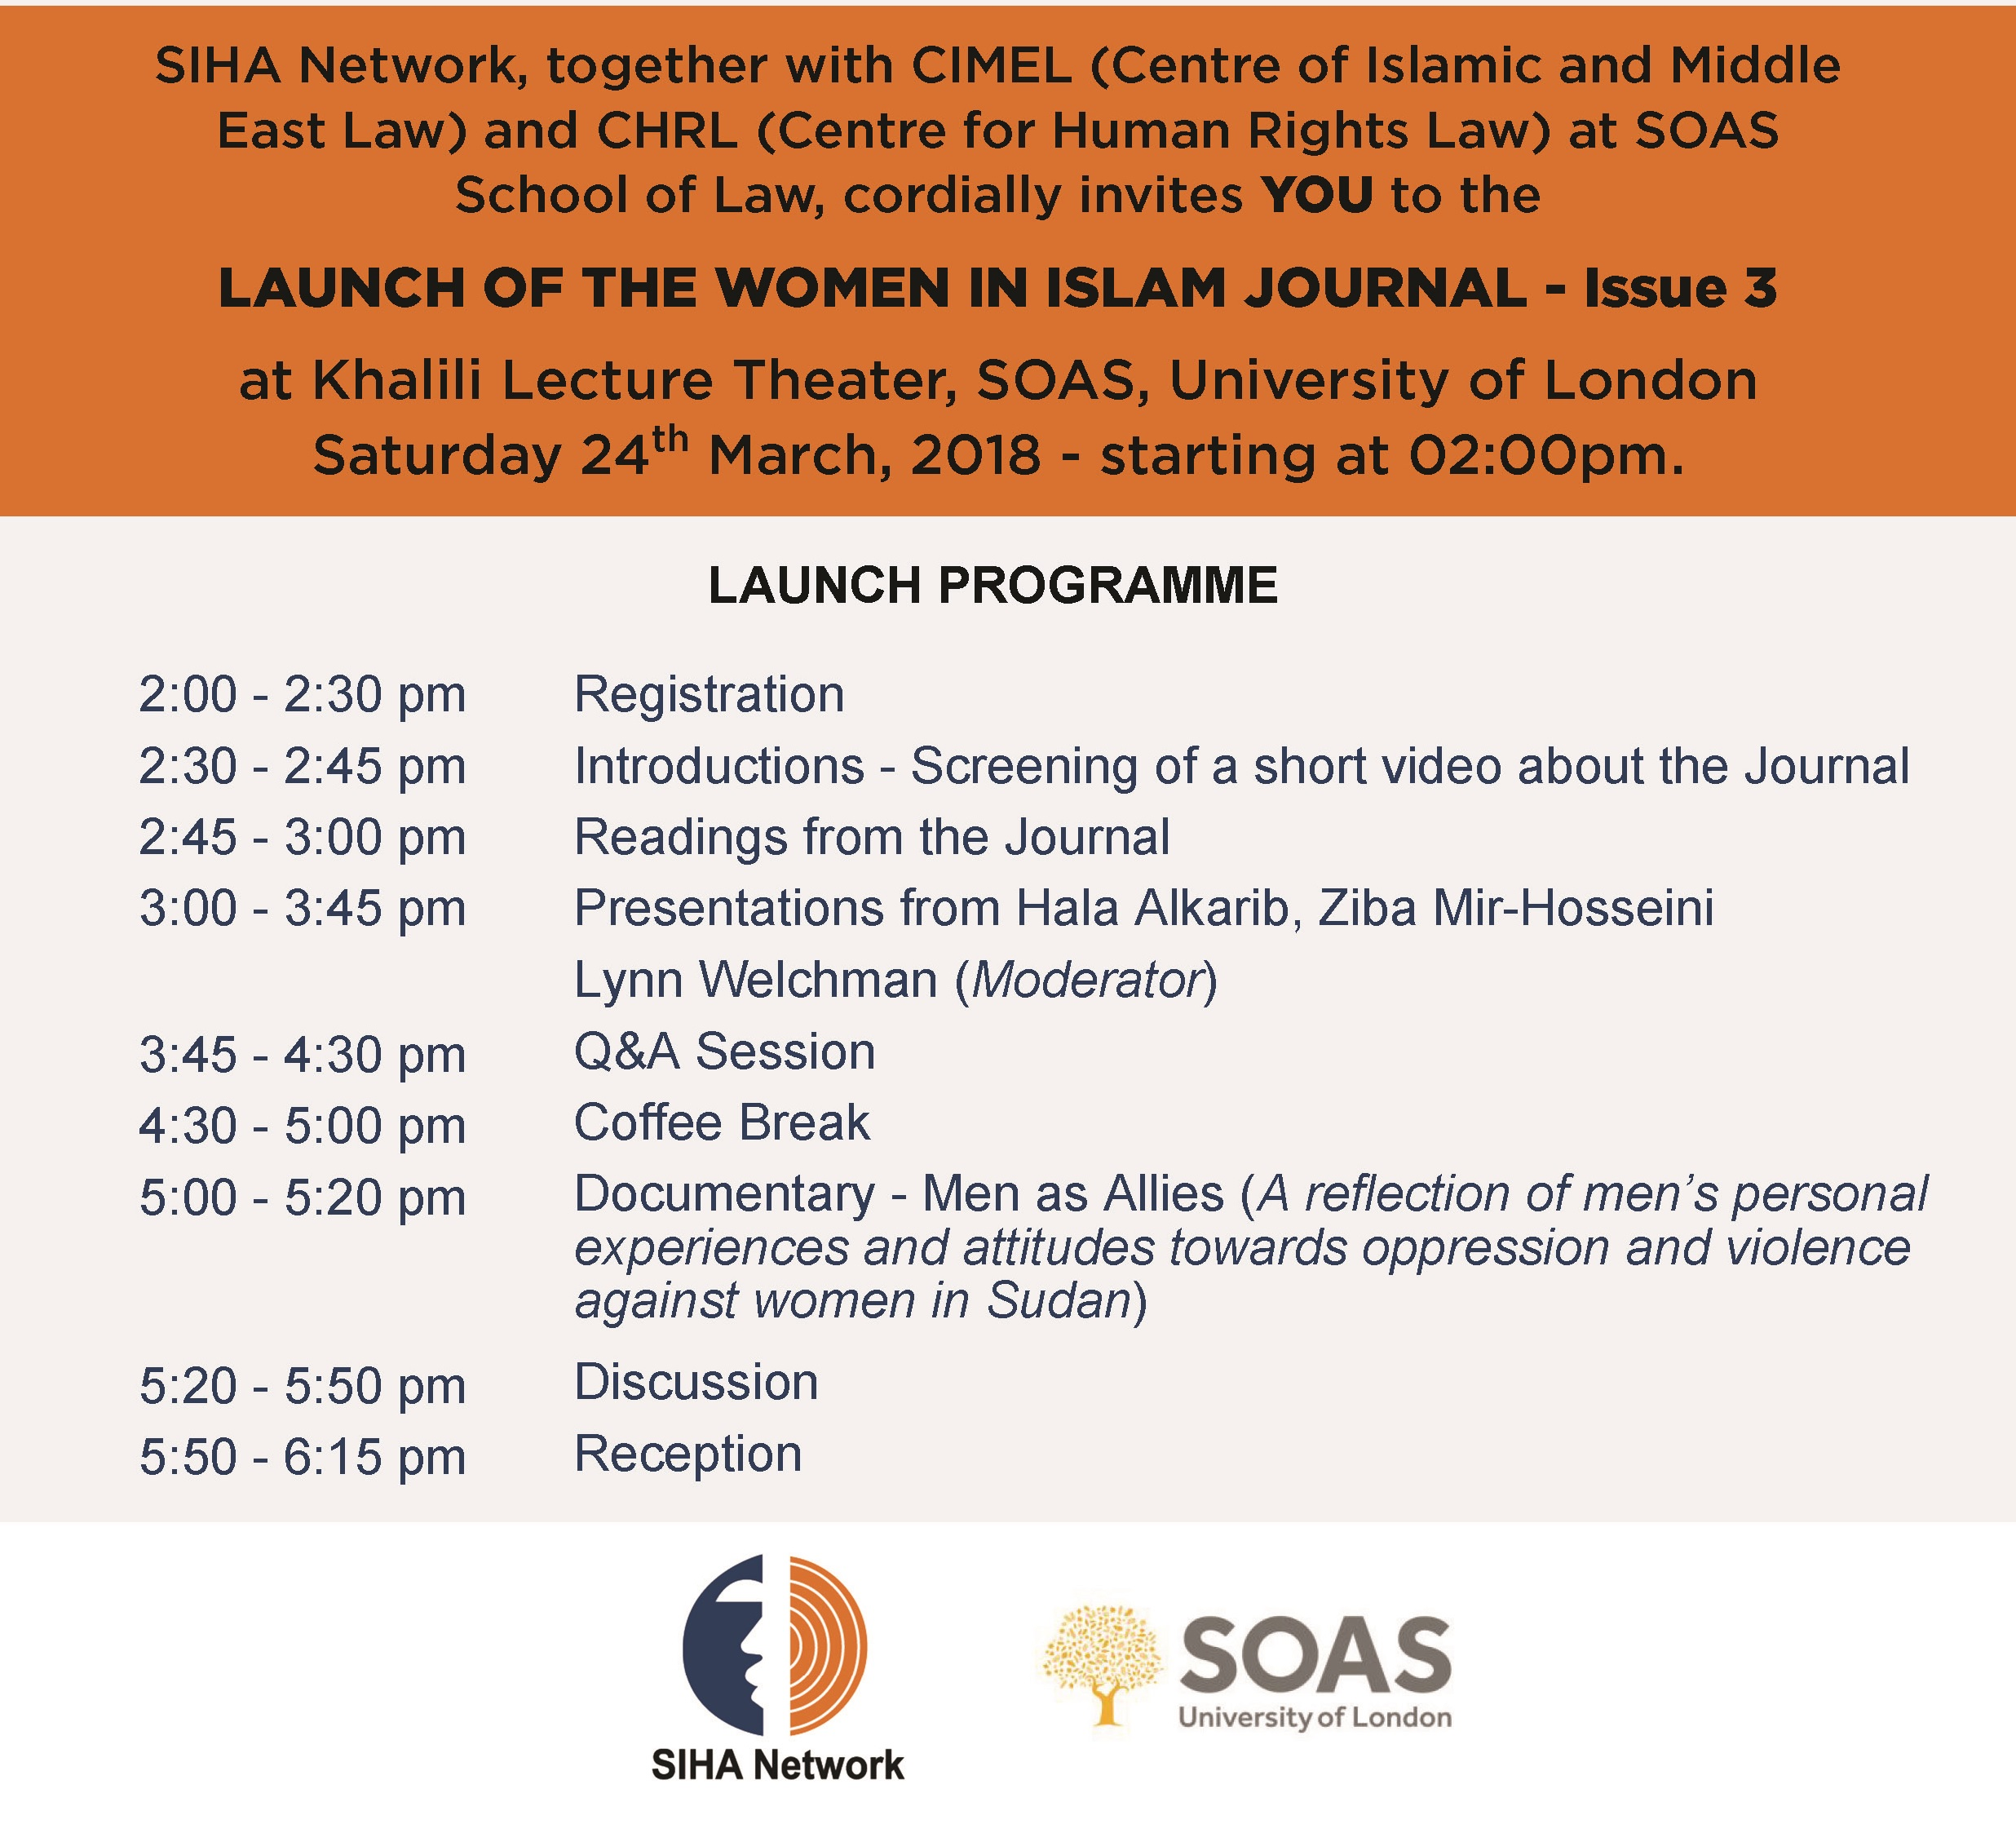 Launch of the Women of Islam Journal - Issue 3